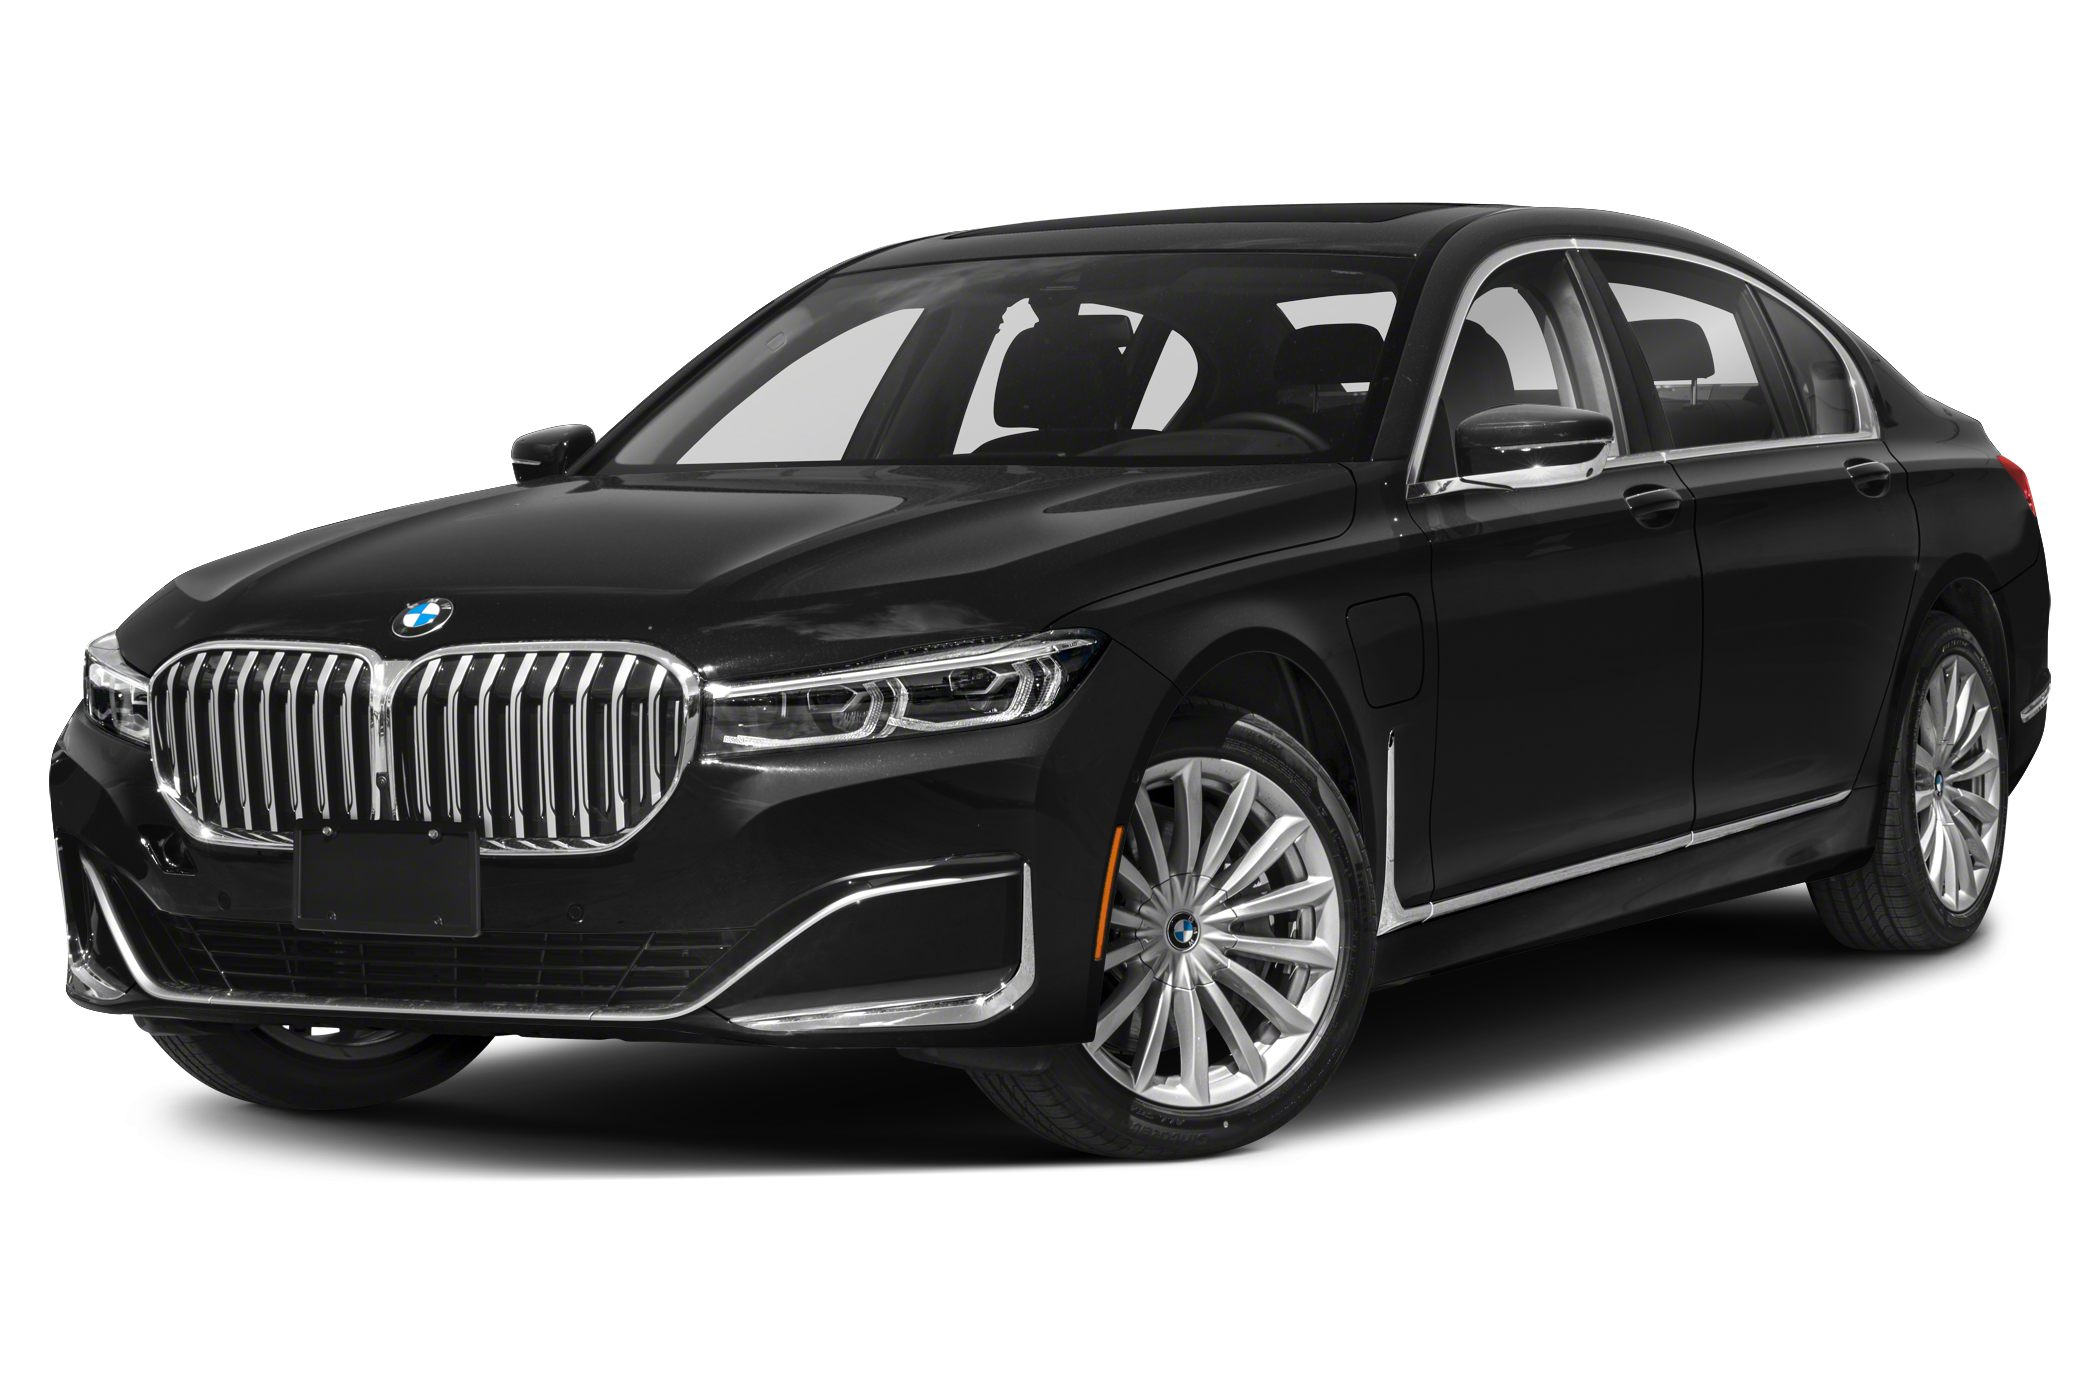 2020 Bmw 745e Xdrive Iperformance 4dr All Wheel Drive Sedan Pictures